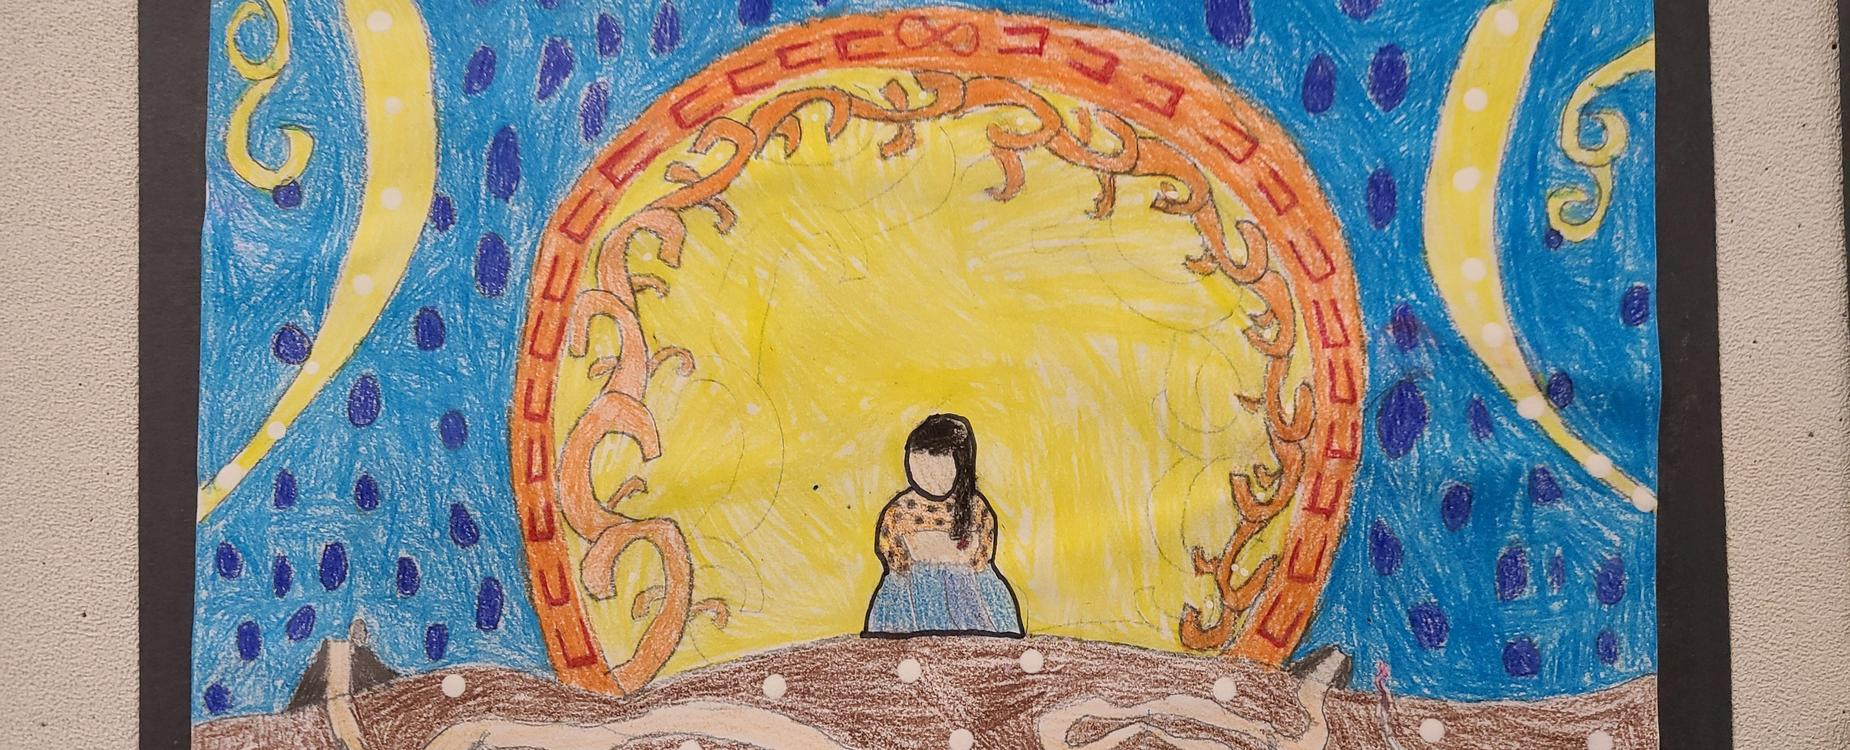 Metis artwork of a woman sitting on the ground, with a large sun at her back, and the blue sky in the background